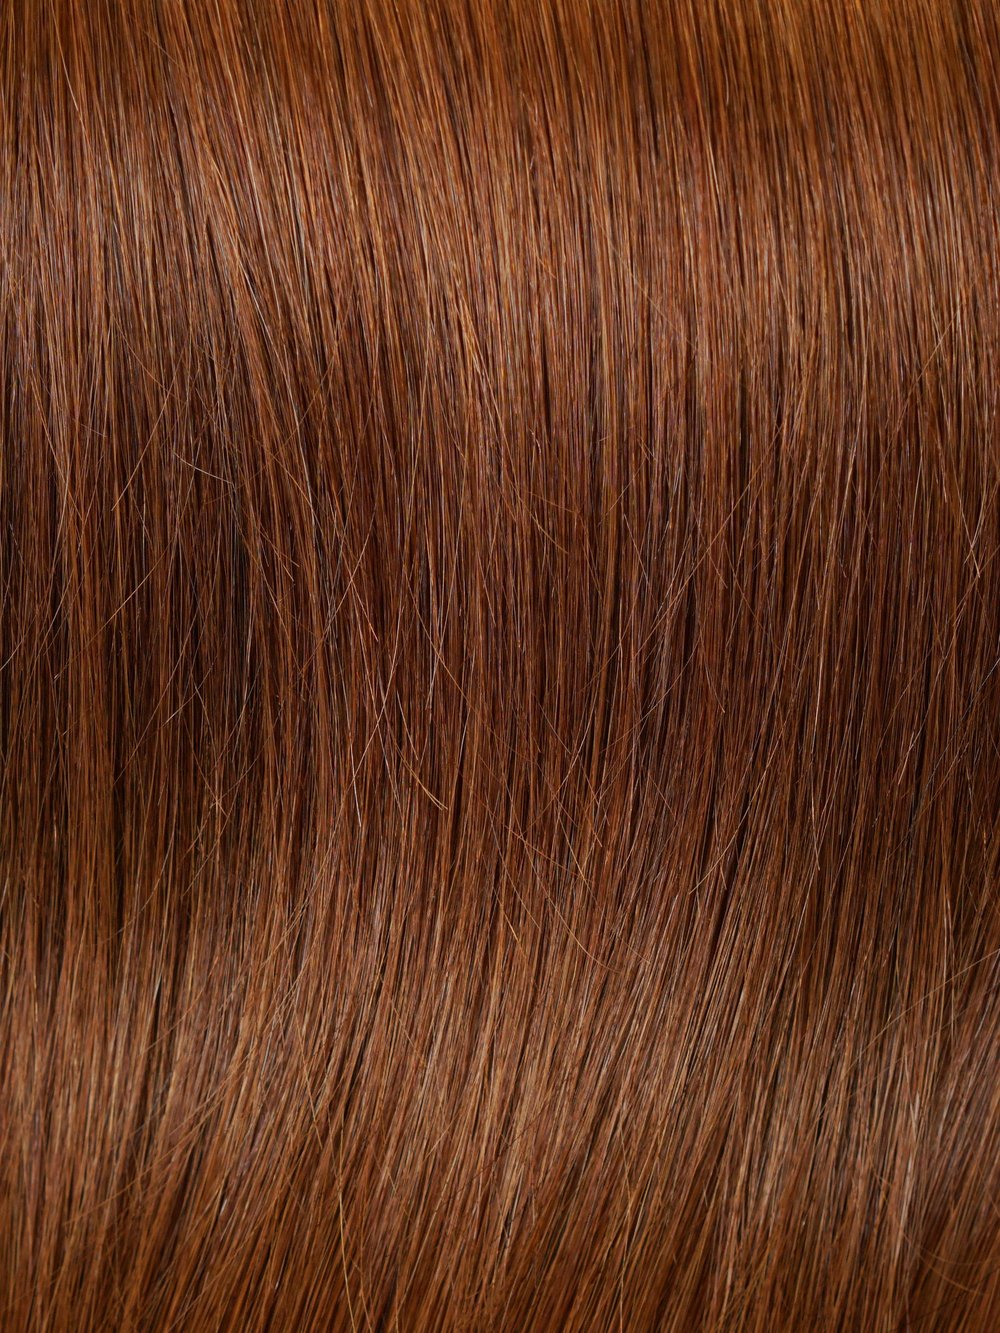 AUBURN #35 - A warm tone blend of deep red and light brown highlights work together to give a glittering bronzed look.